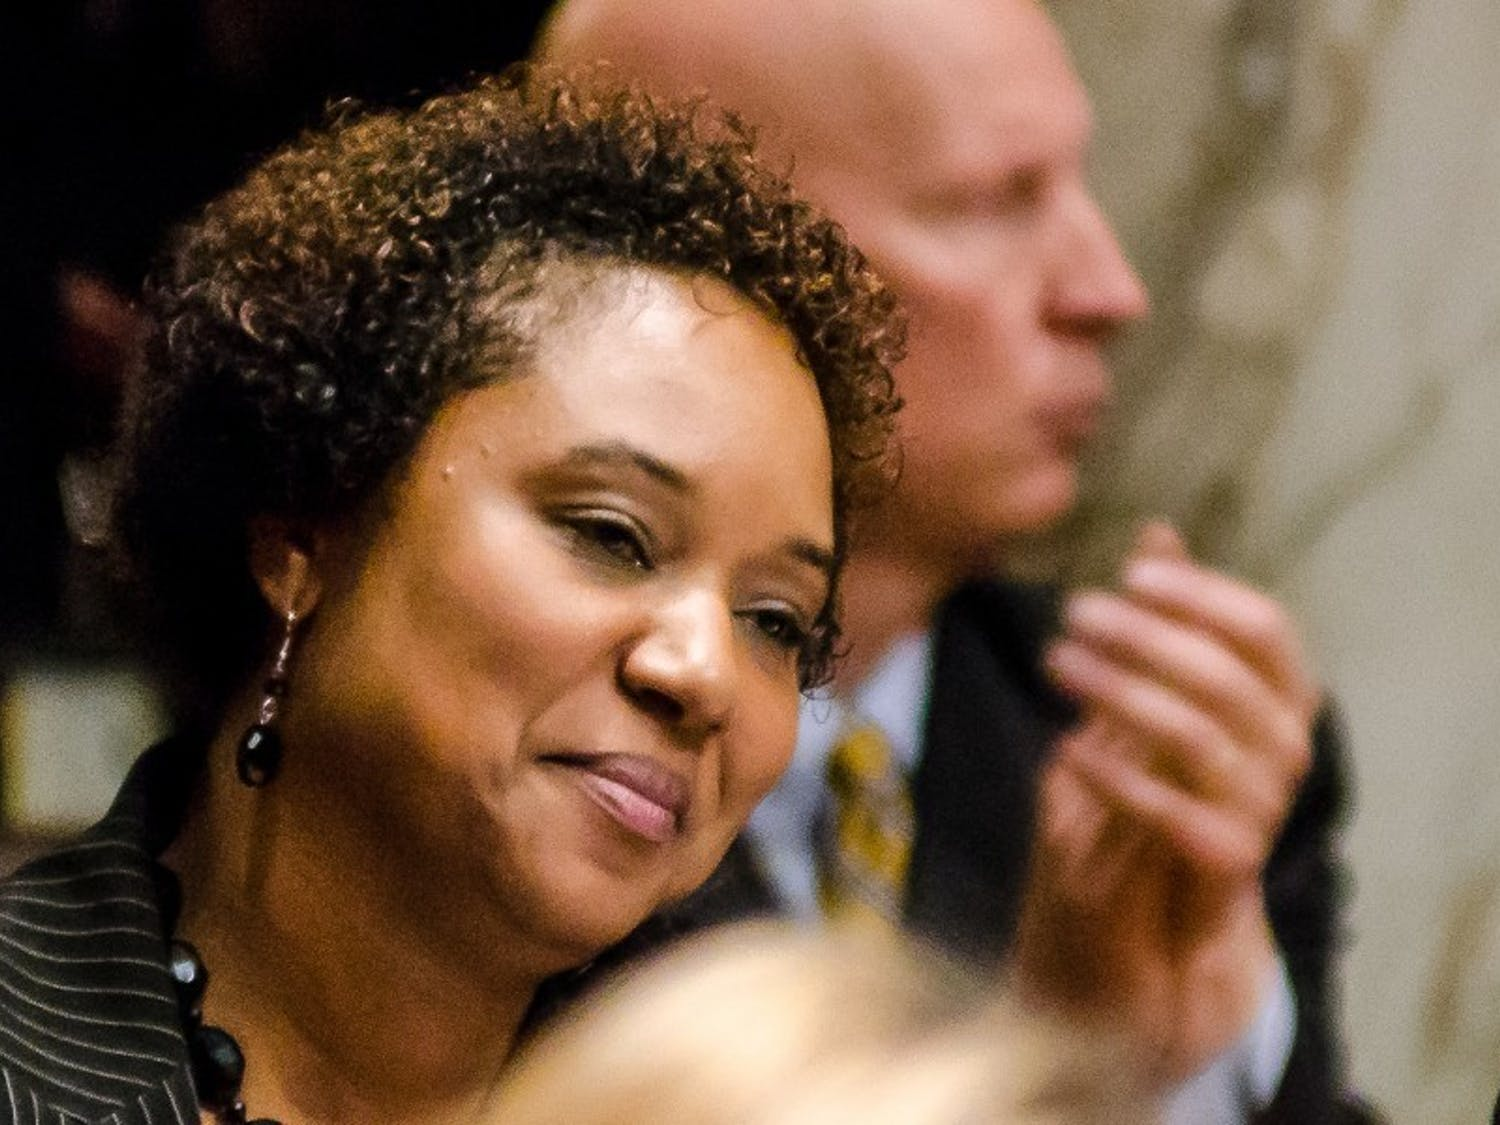 Sen. Lena Taylor, D-Milwaukee, believes regardless of differing perspectives, Republicans missed the mark by not publically debating about the proposed gun control laws during special session.